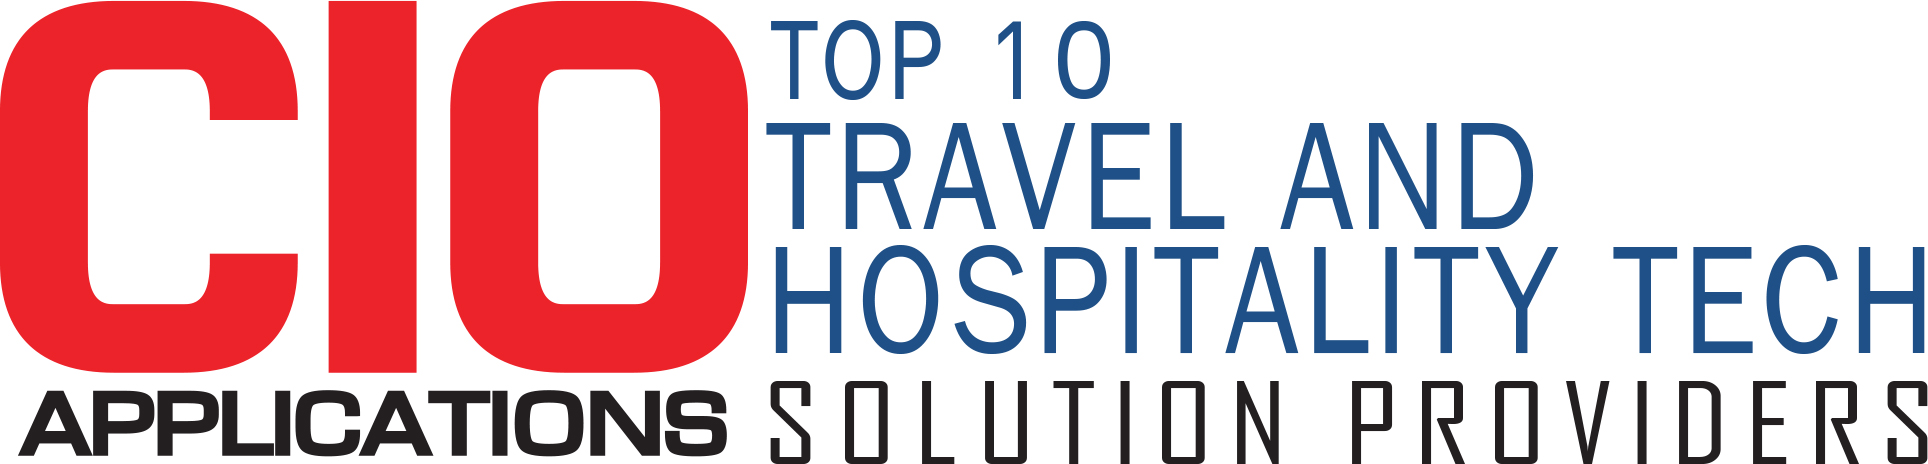 Top Travel and Hospitality Tech Companies